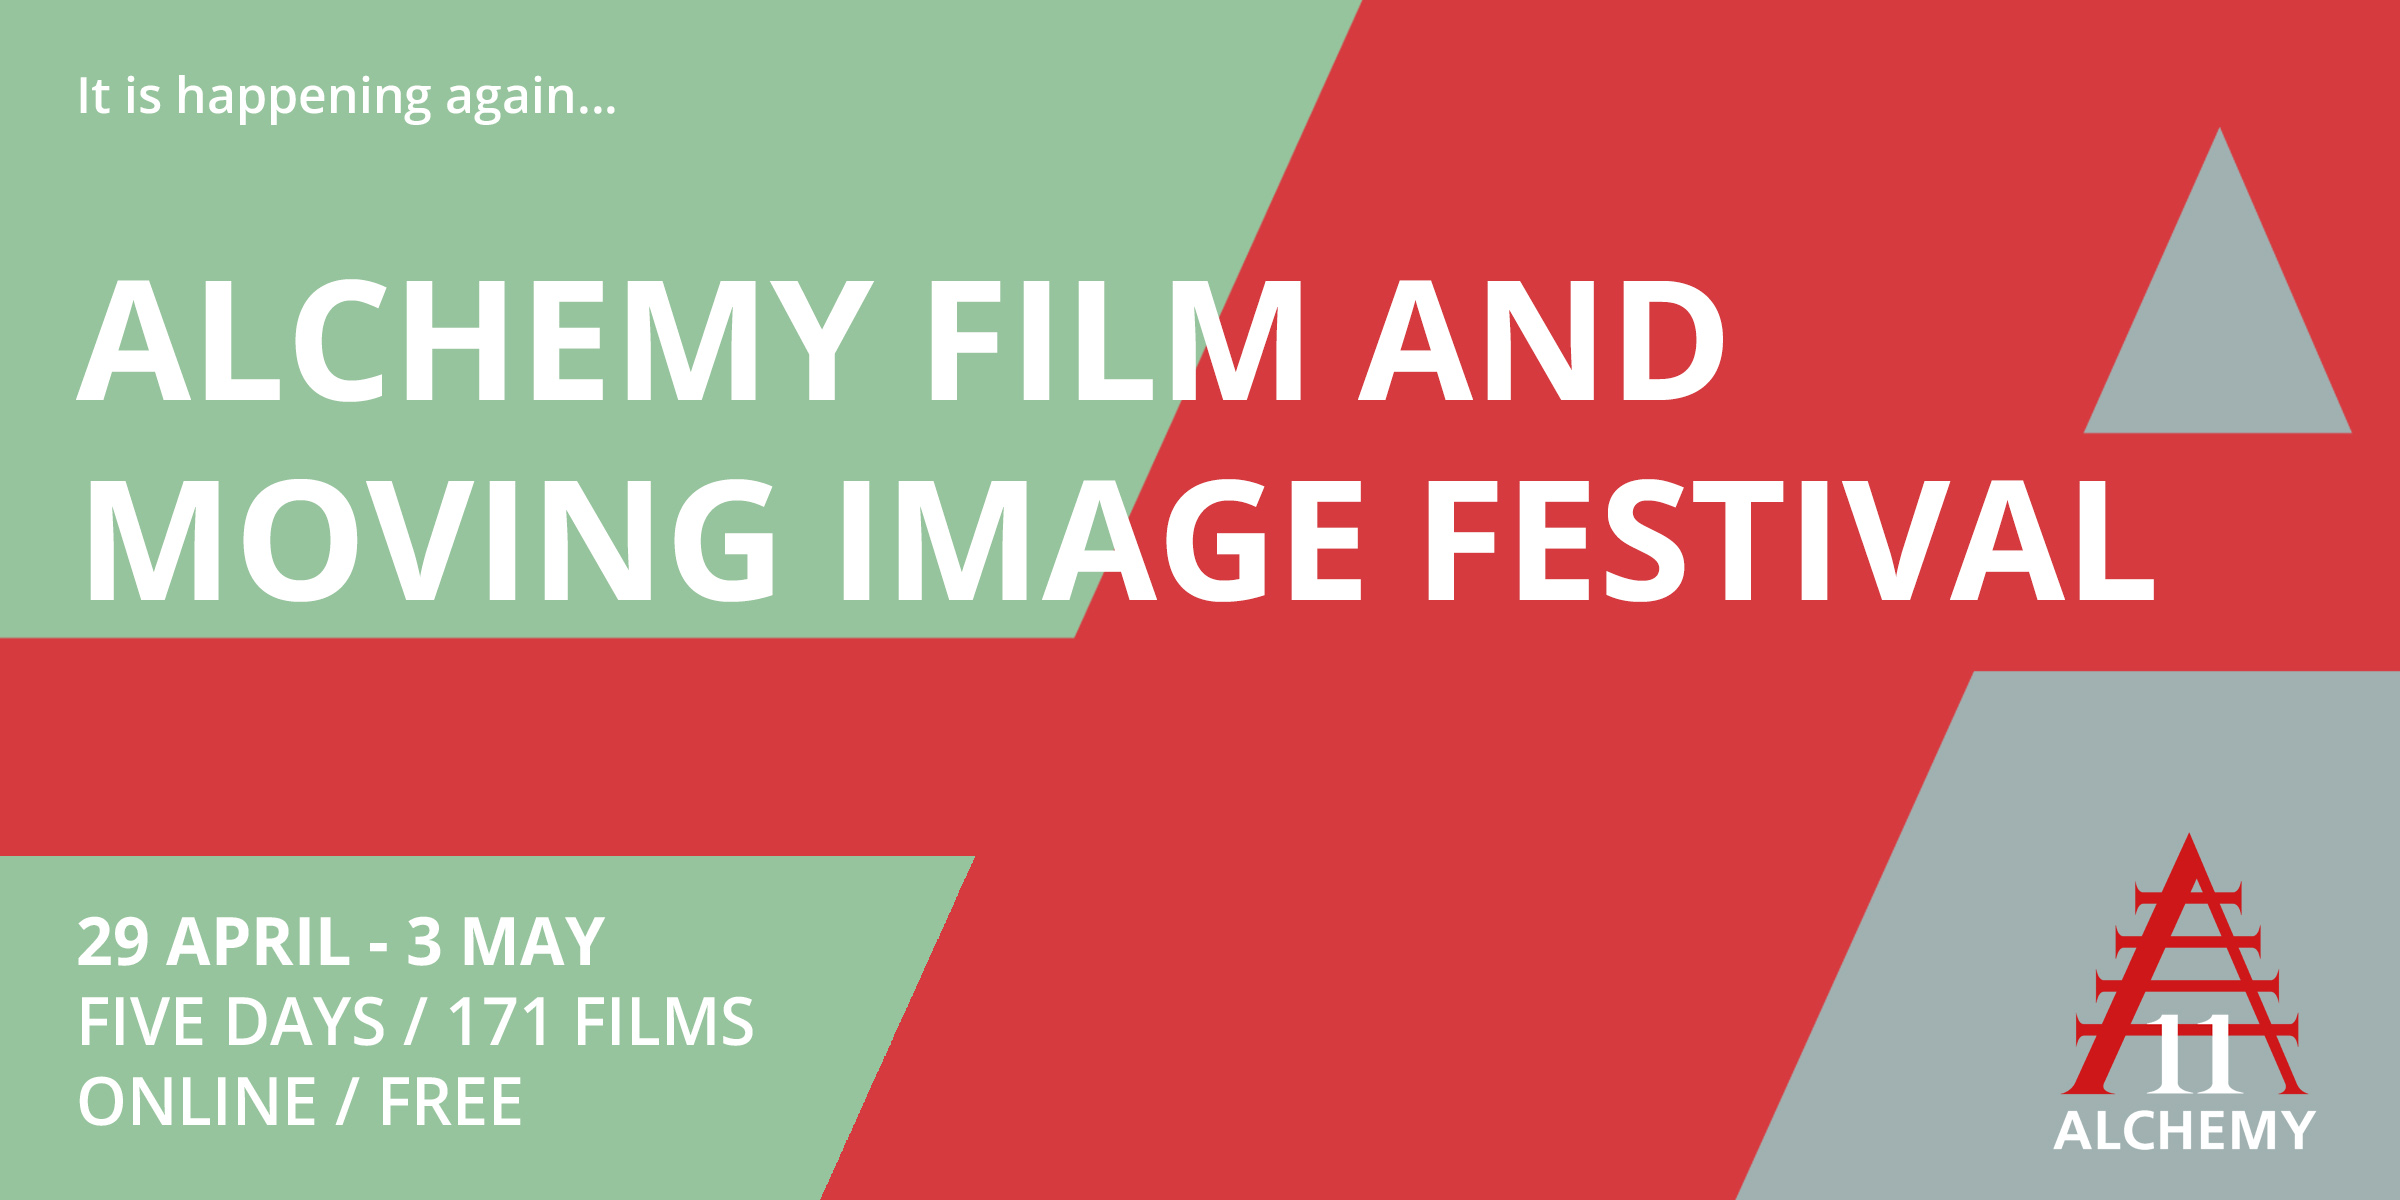 "A red and green graphic overlaid with white text that reads, ""It is happening again... Alchemy Film and Moving Image Festival, 29 April - 3 May, Five Days / 171 Films, Online / Free"""